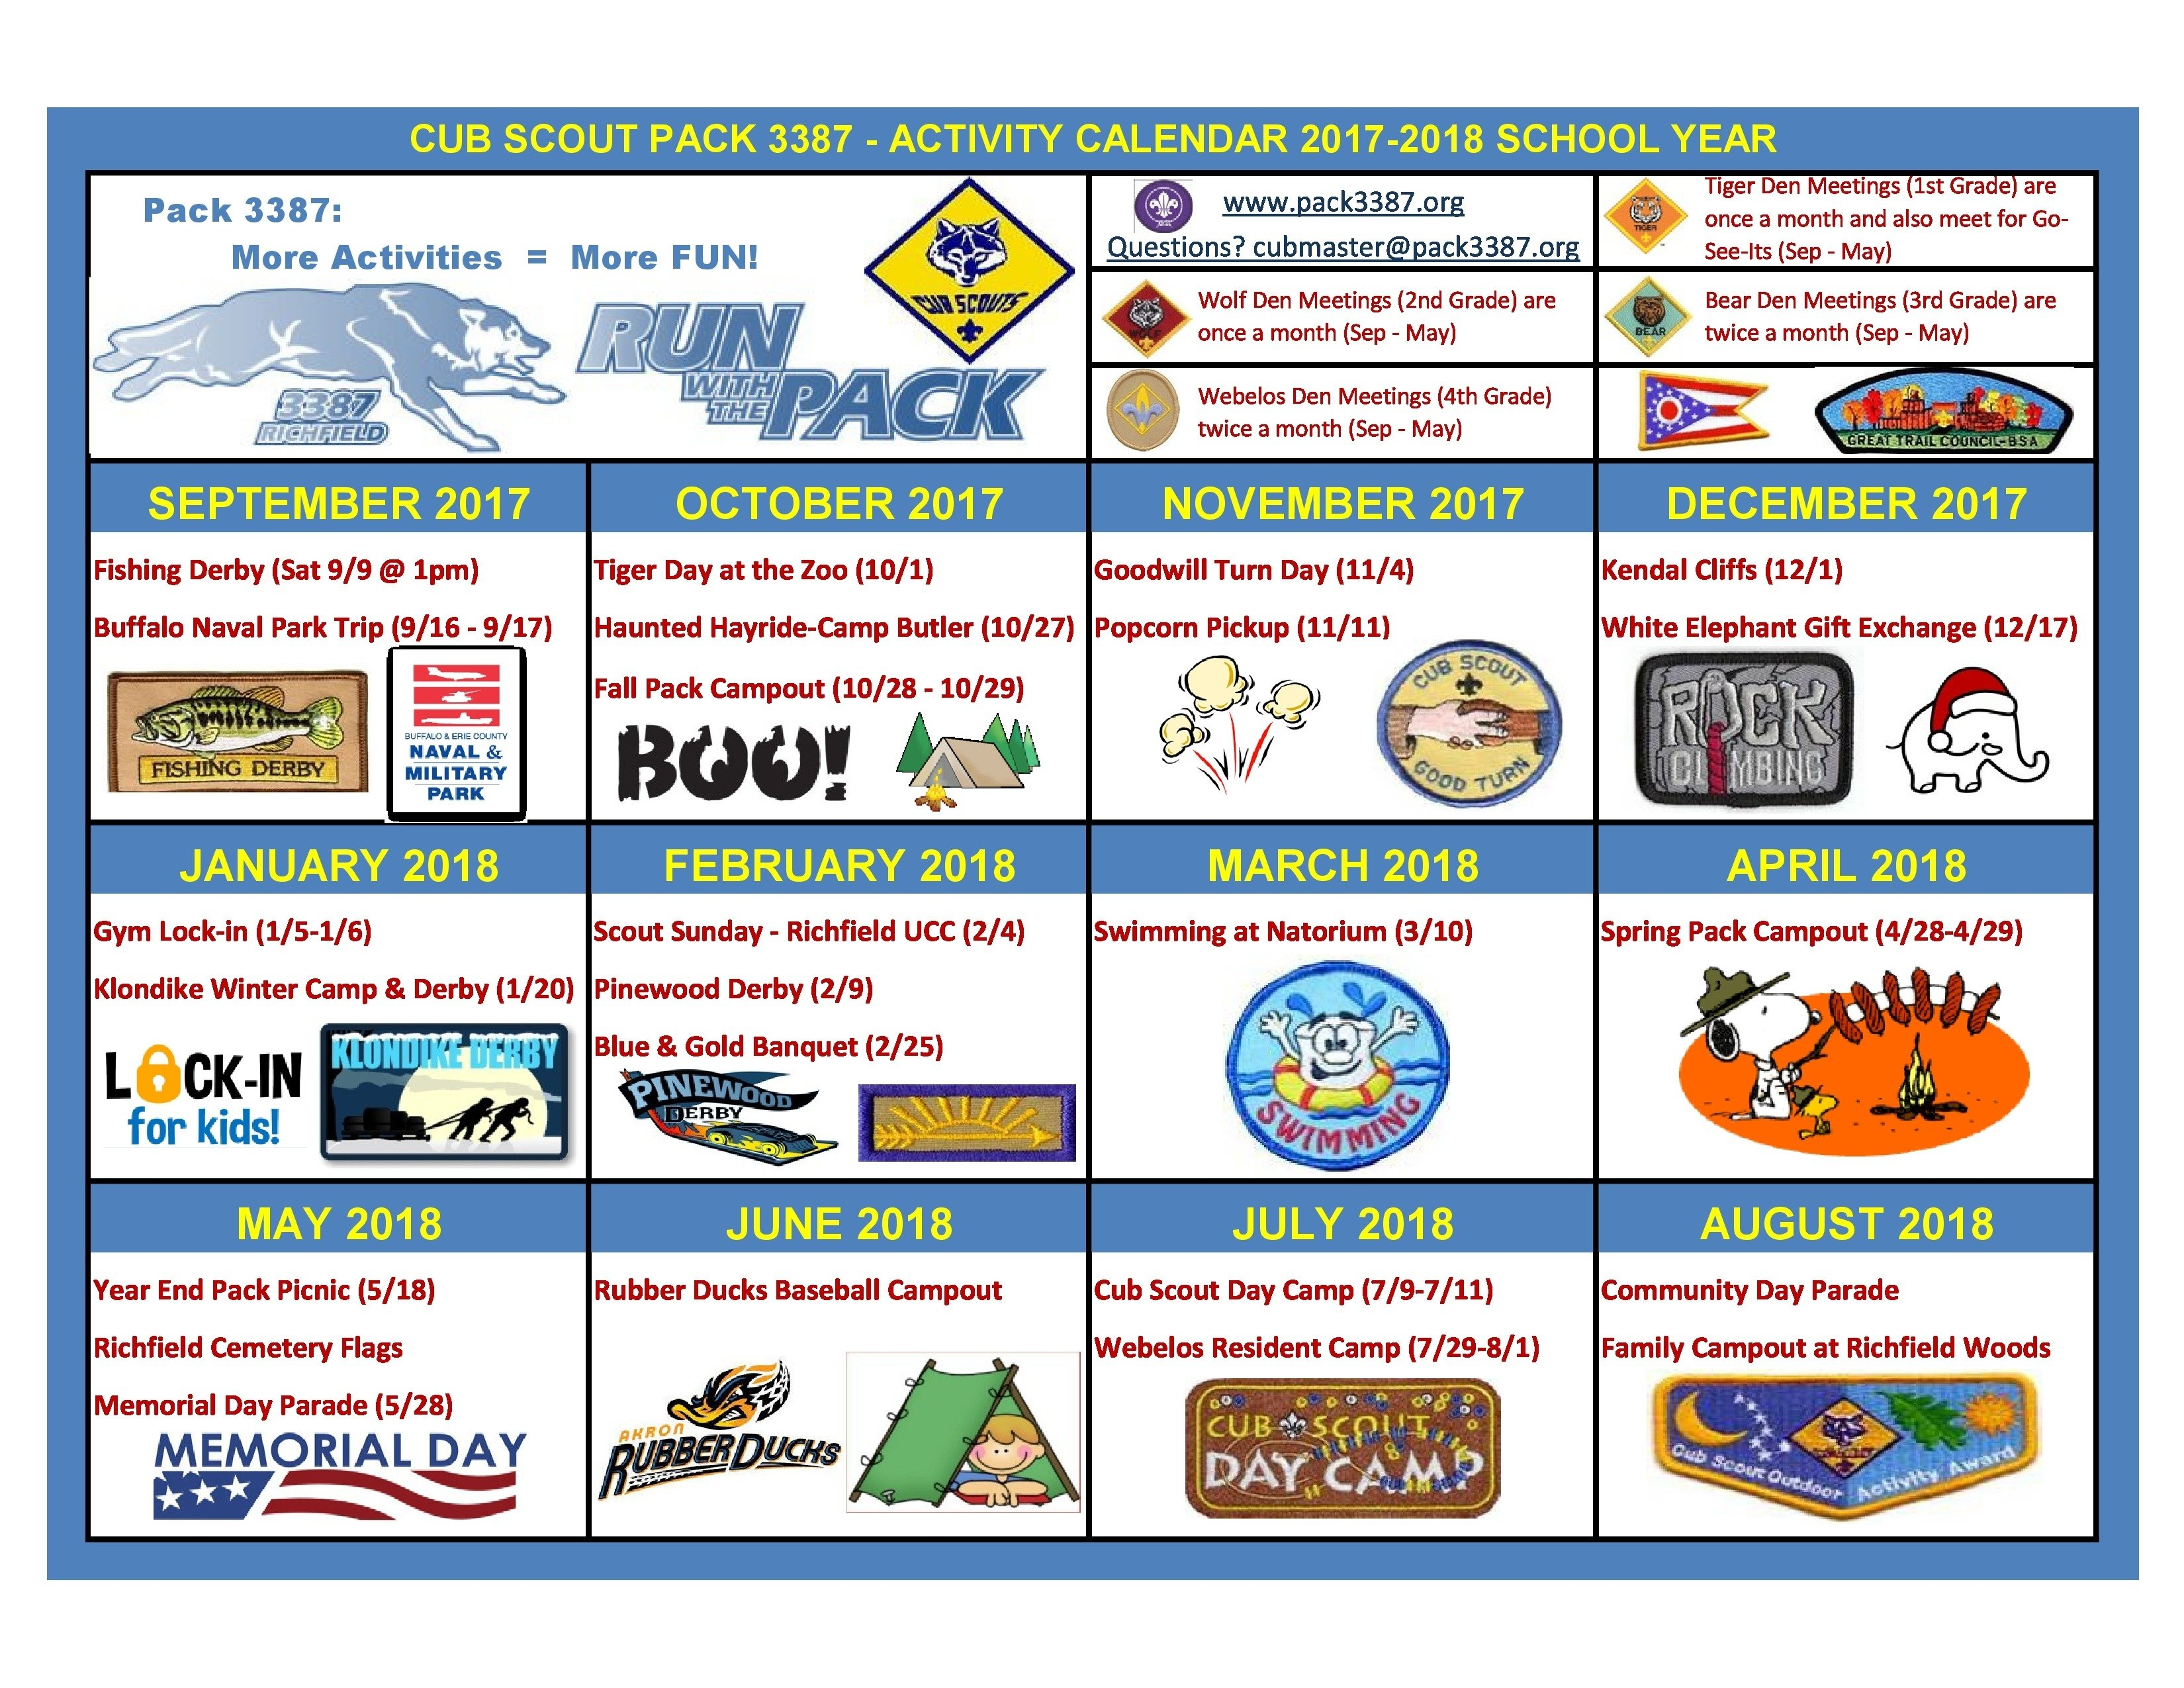 10 Stunning Cub Scout Den Meeting Ideas cub scout pack 3387 richfield oh 44286 2020